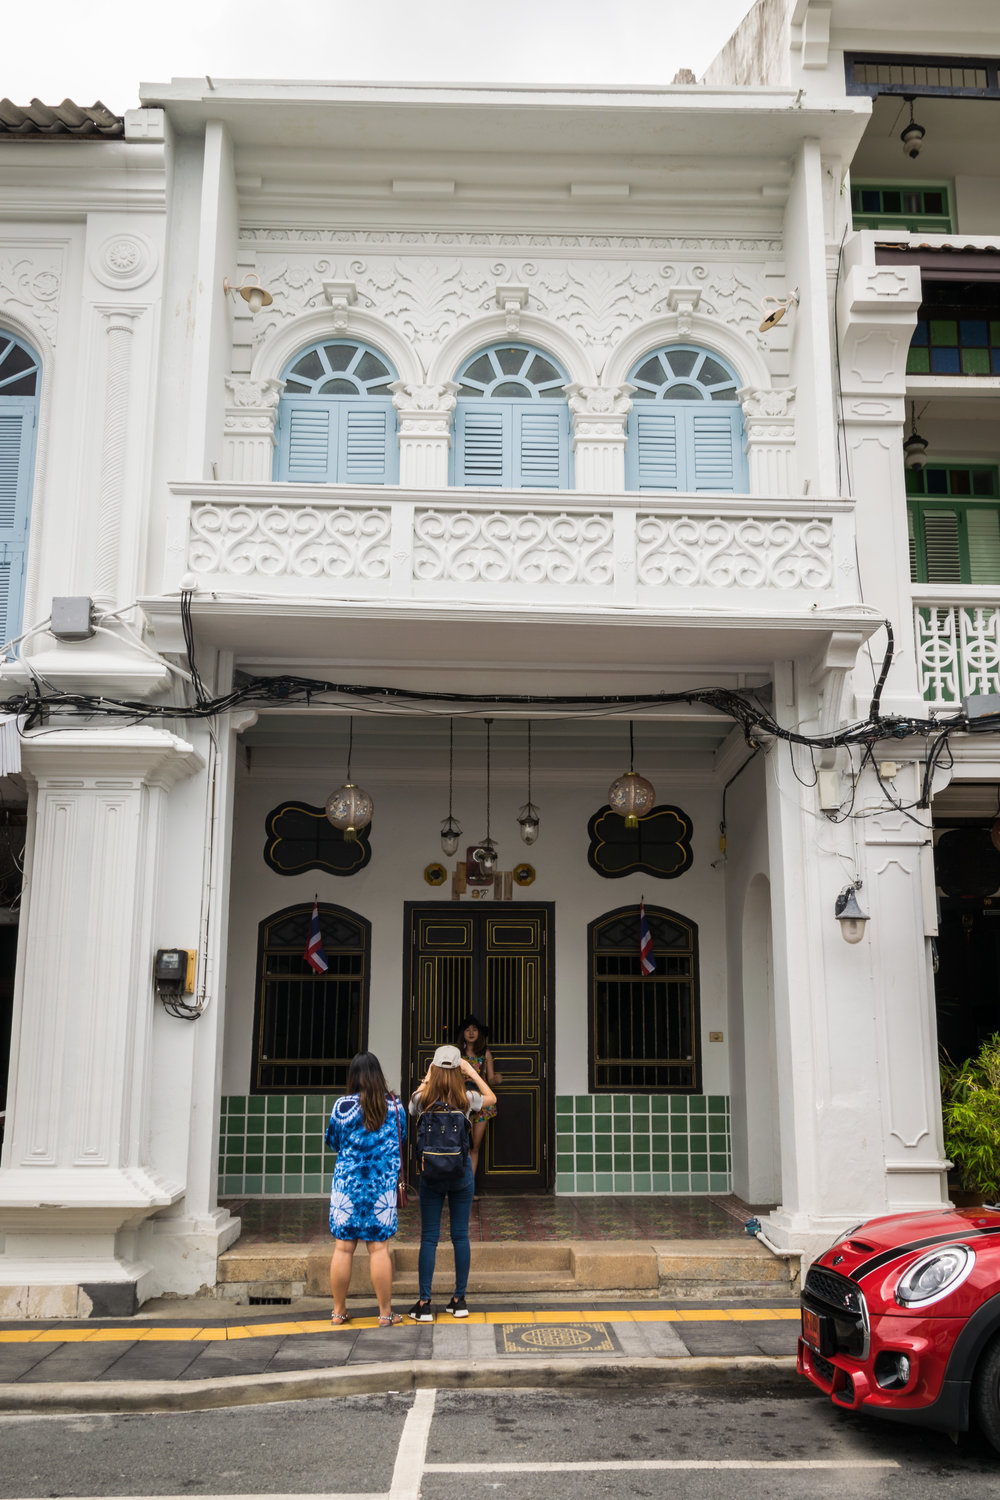 Phuket Old Town buildings-12.jpg